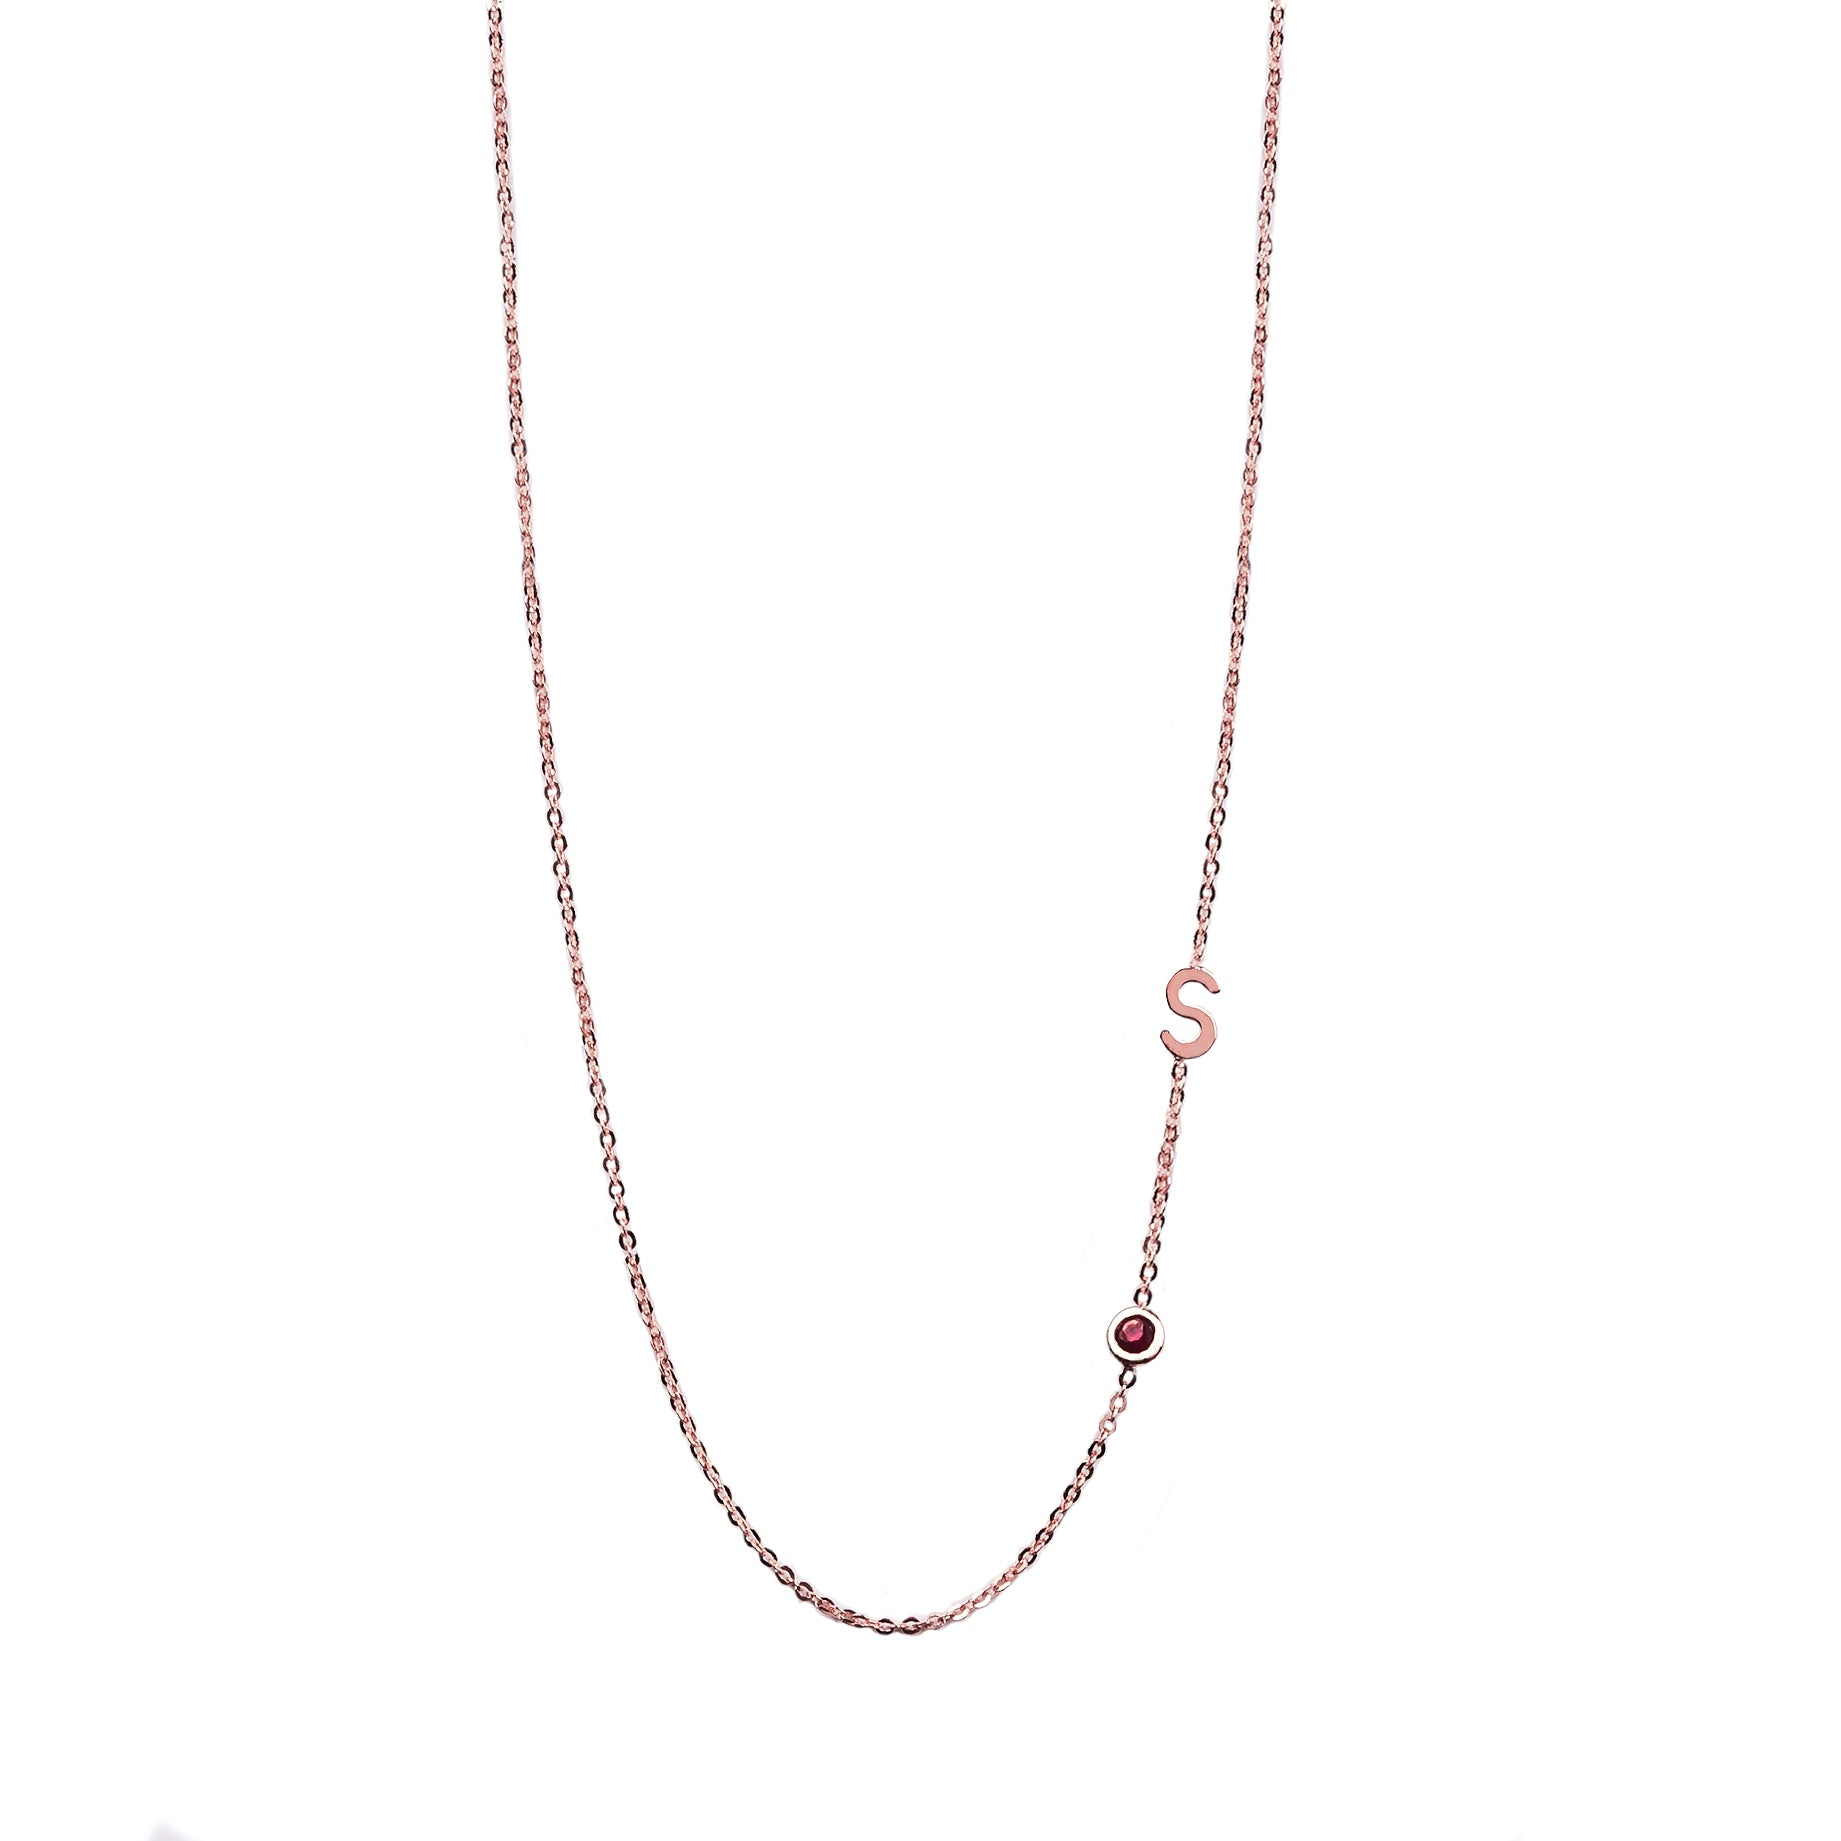 Birthstone and Initial Necklace